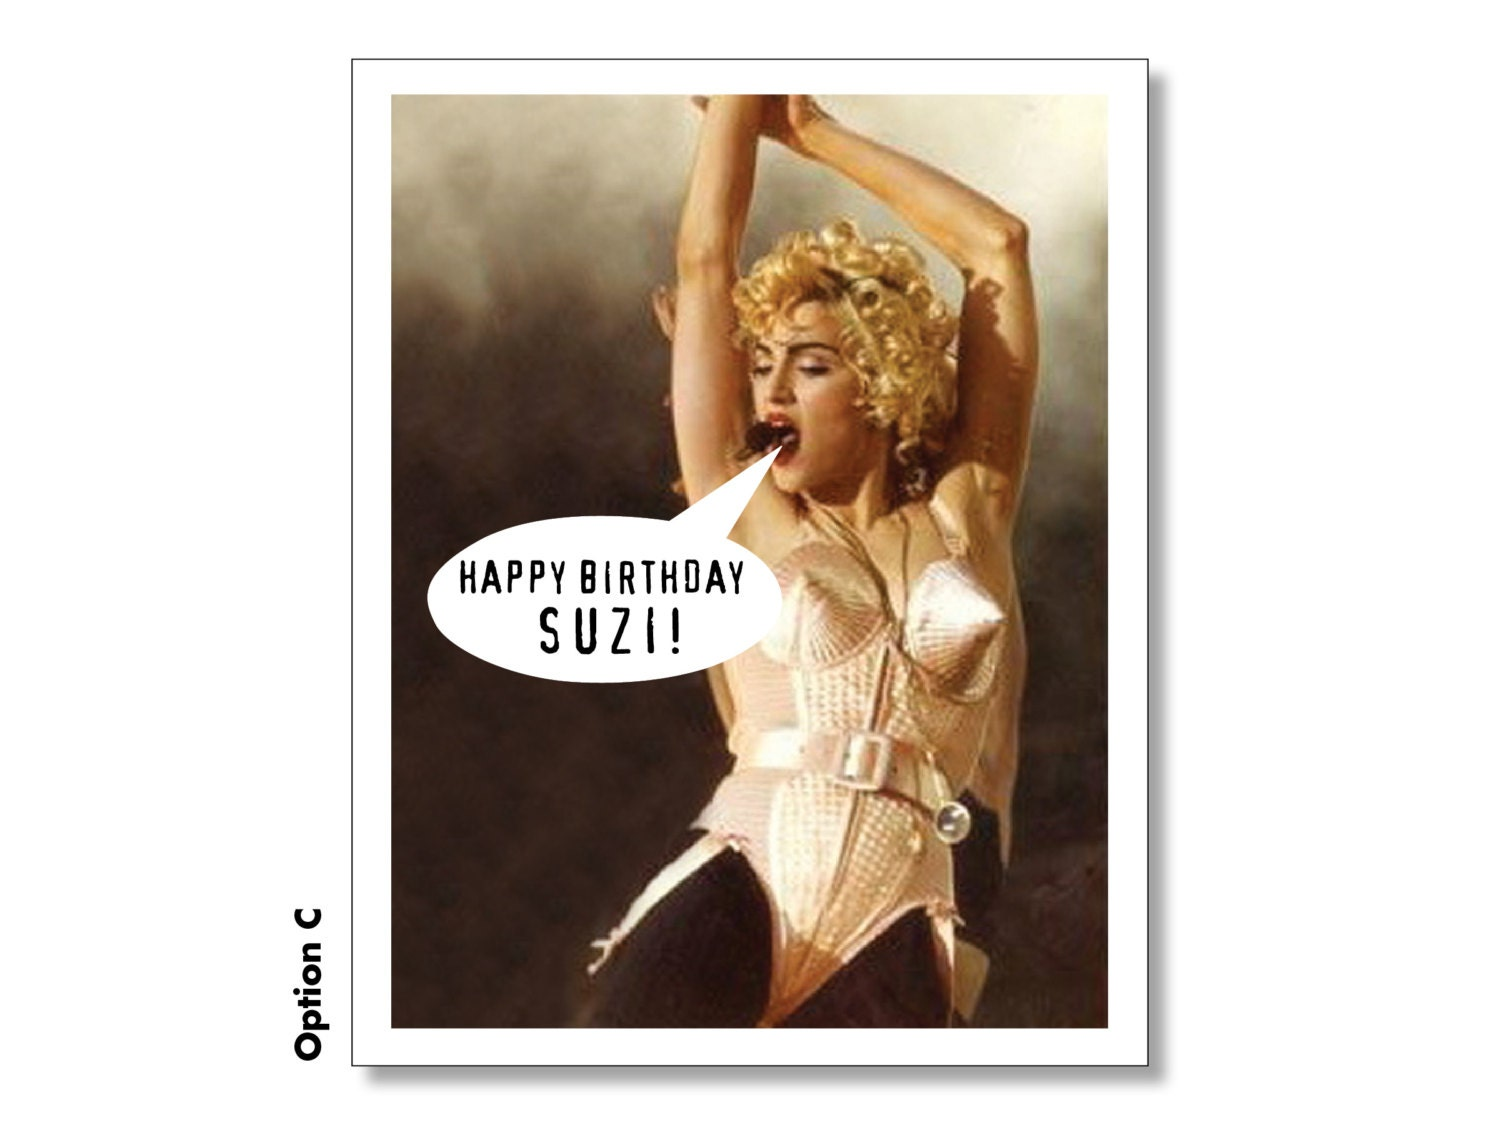 Madonna happy birthday card personalized madonna card super zoom bookmarktalkfo Image collections